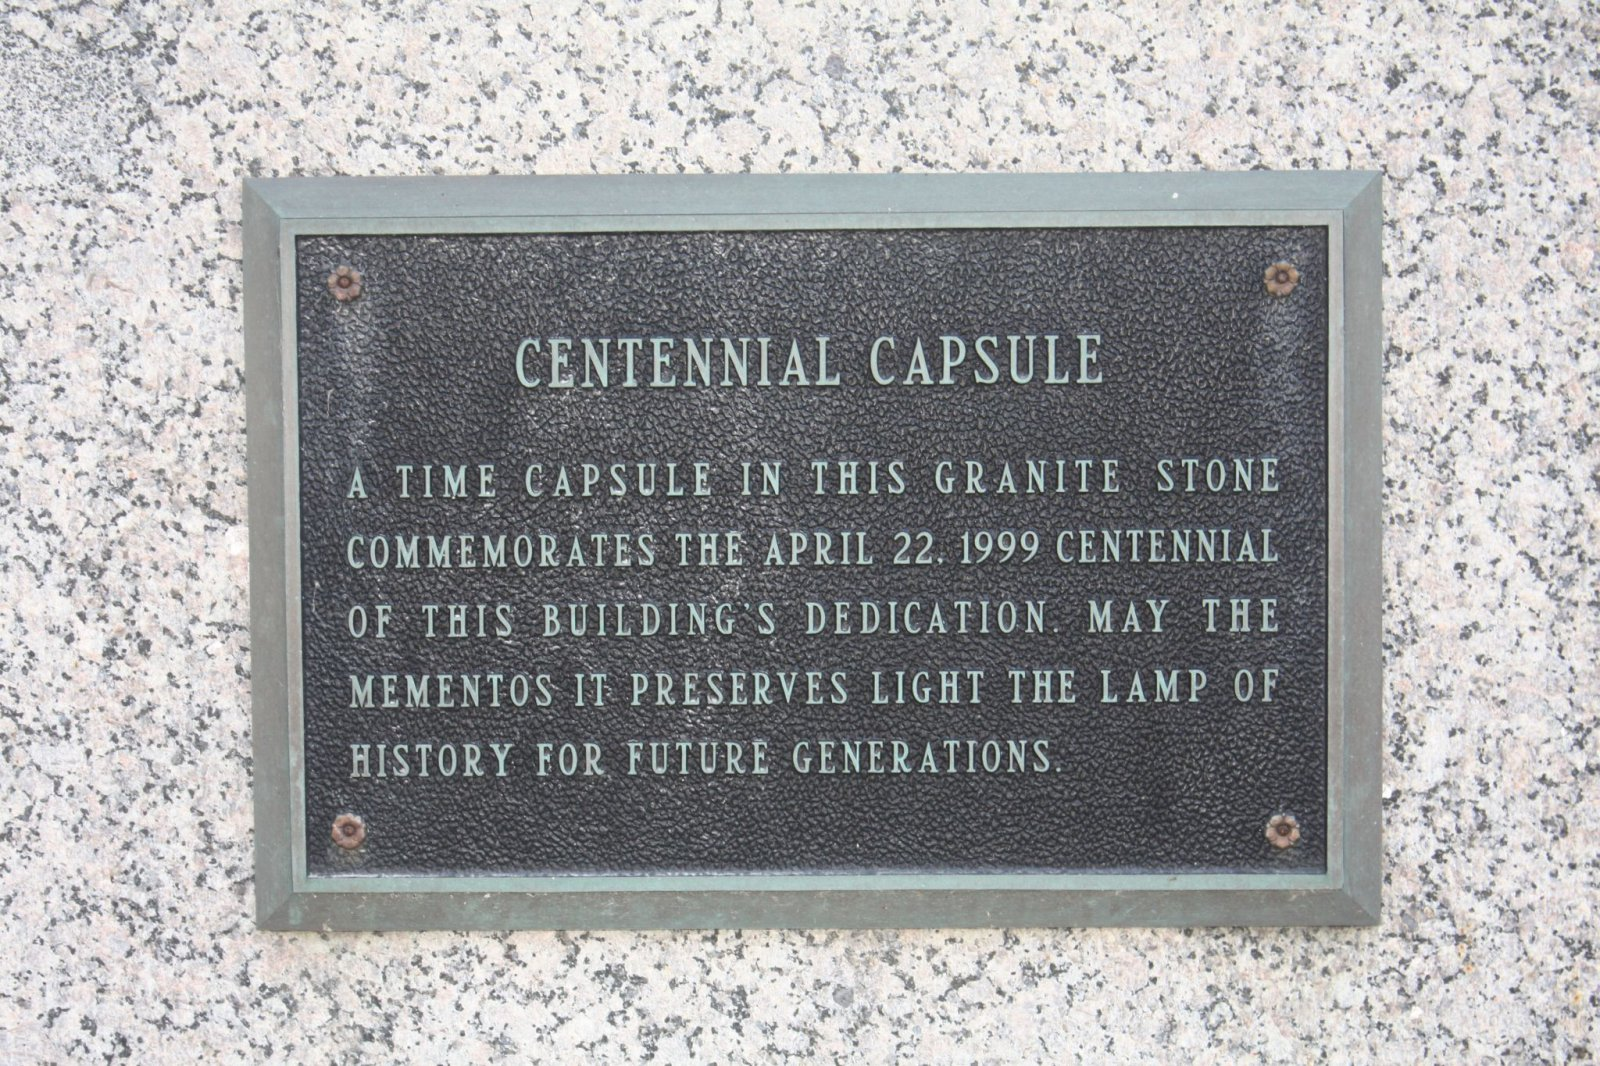 Time capsule at the Federal Courthouse